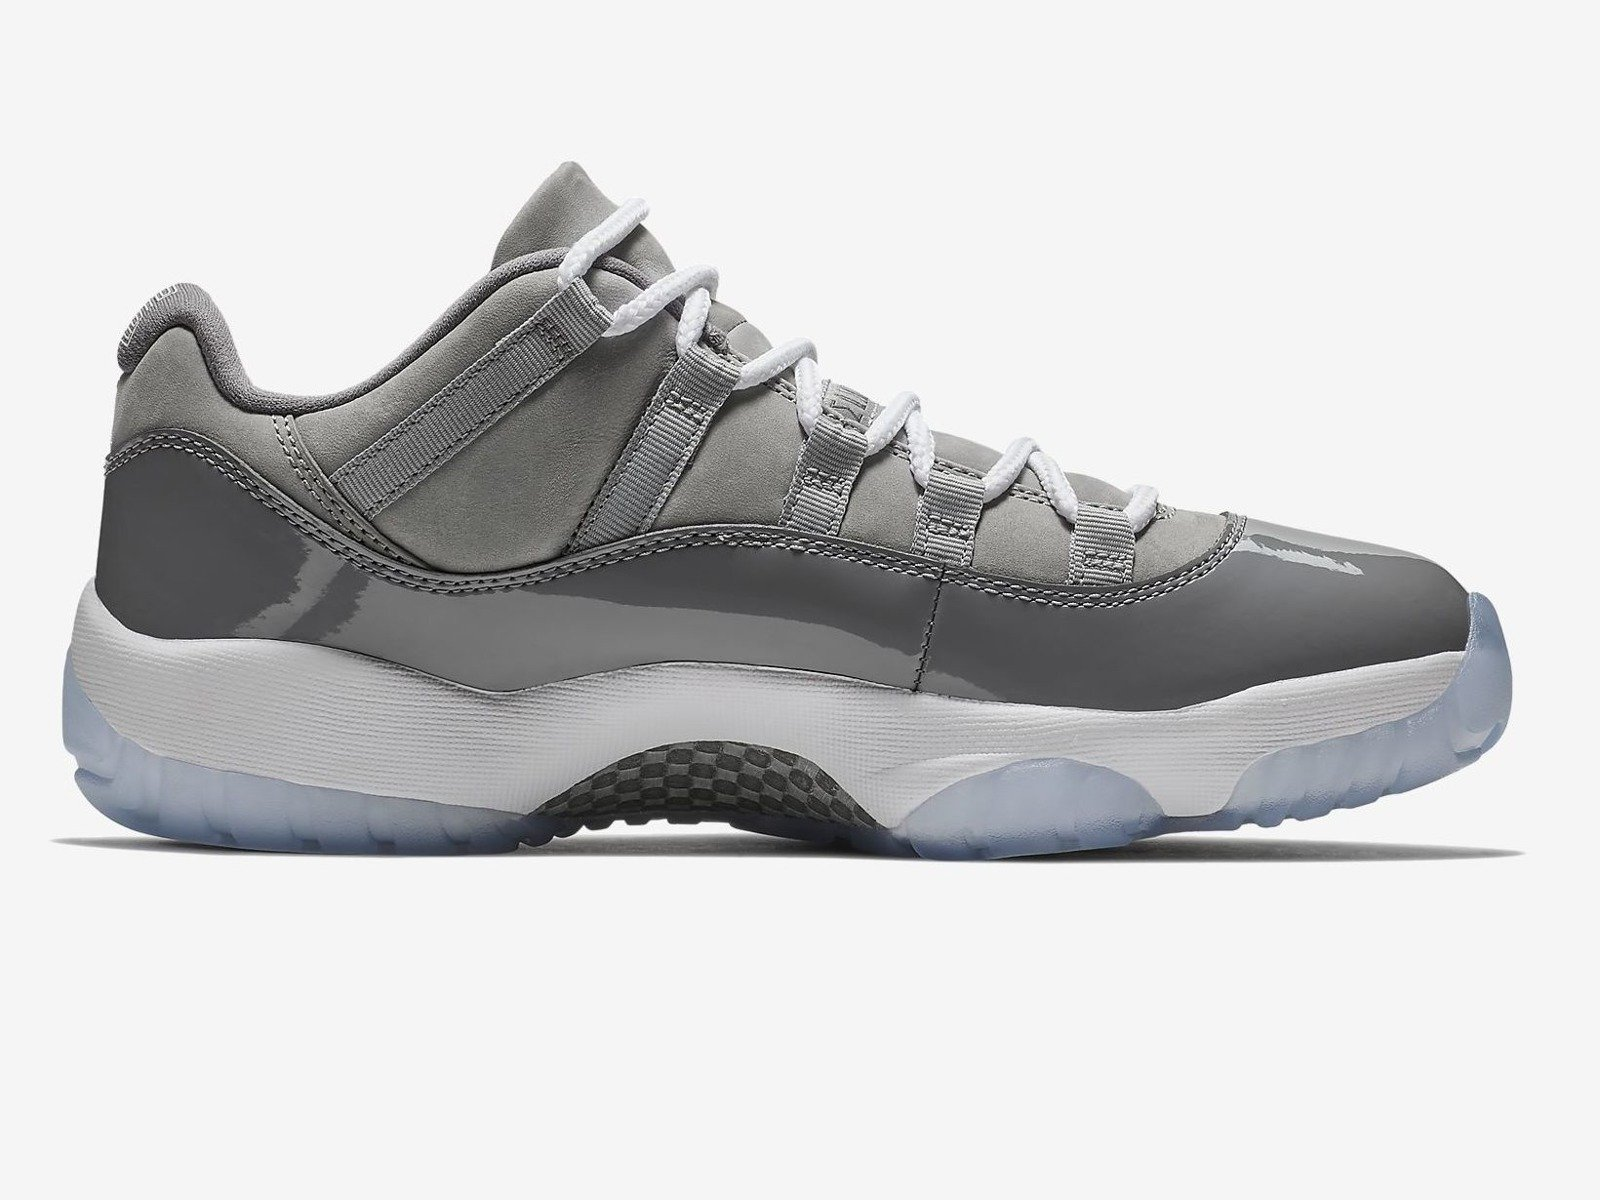 8e092a341ecb4 Air Jordan 11 Retro Low Cool Grey - 528895-003